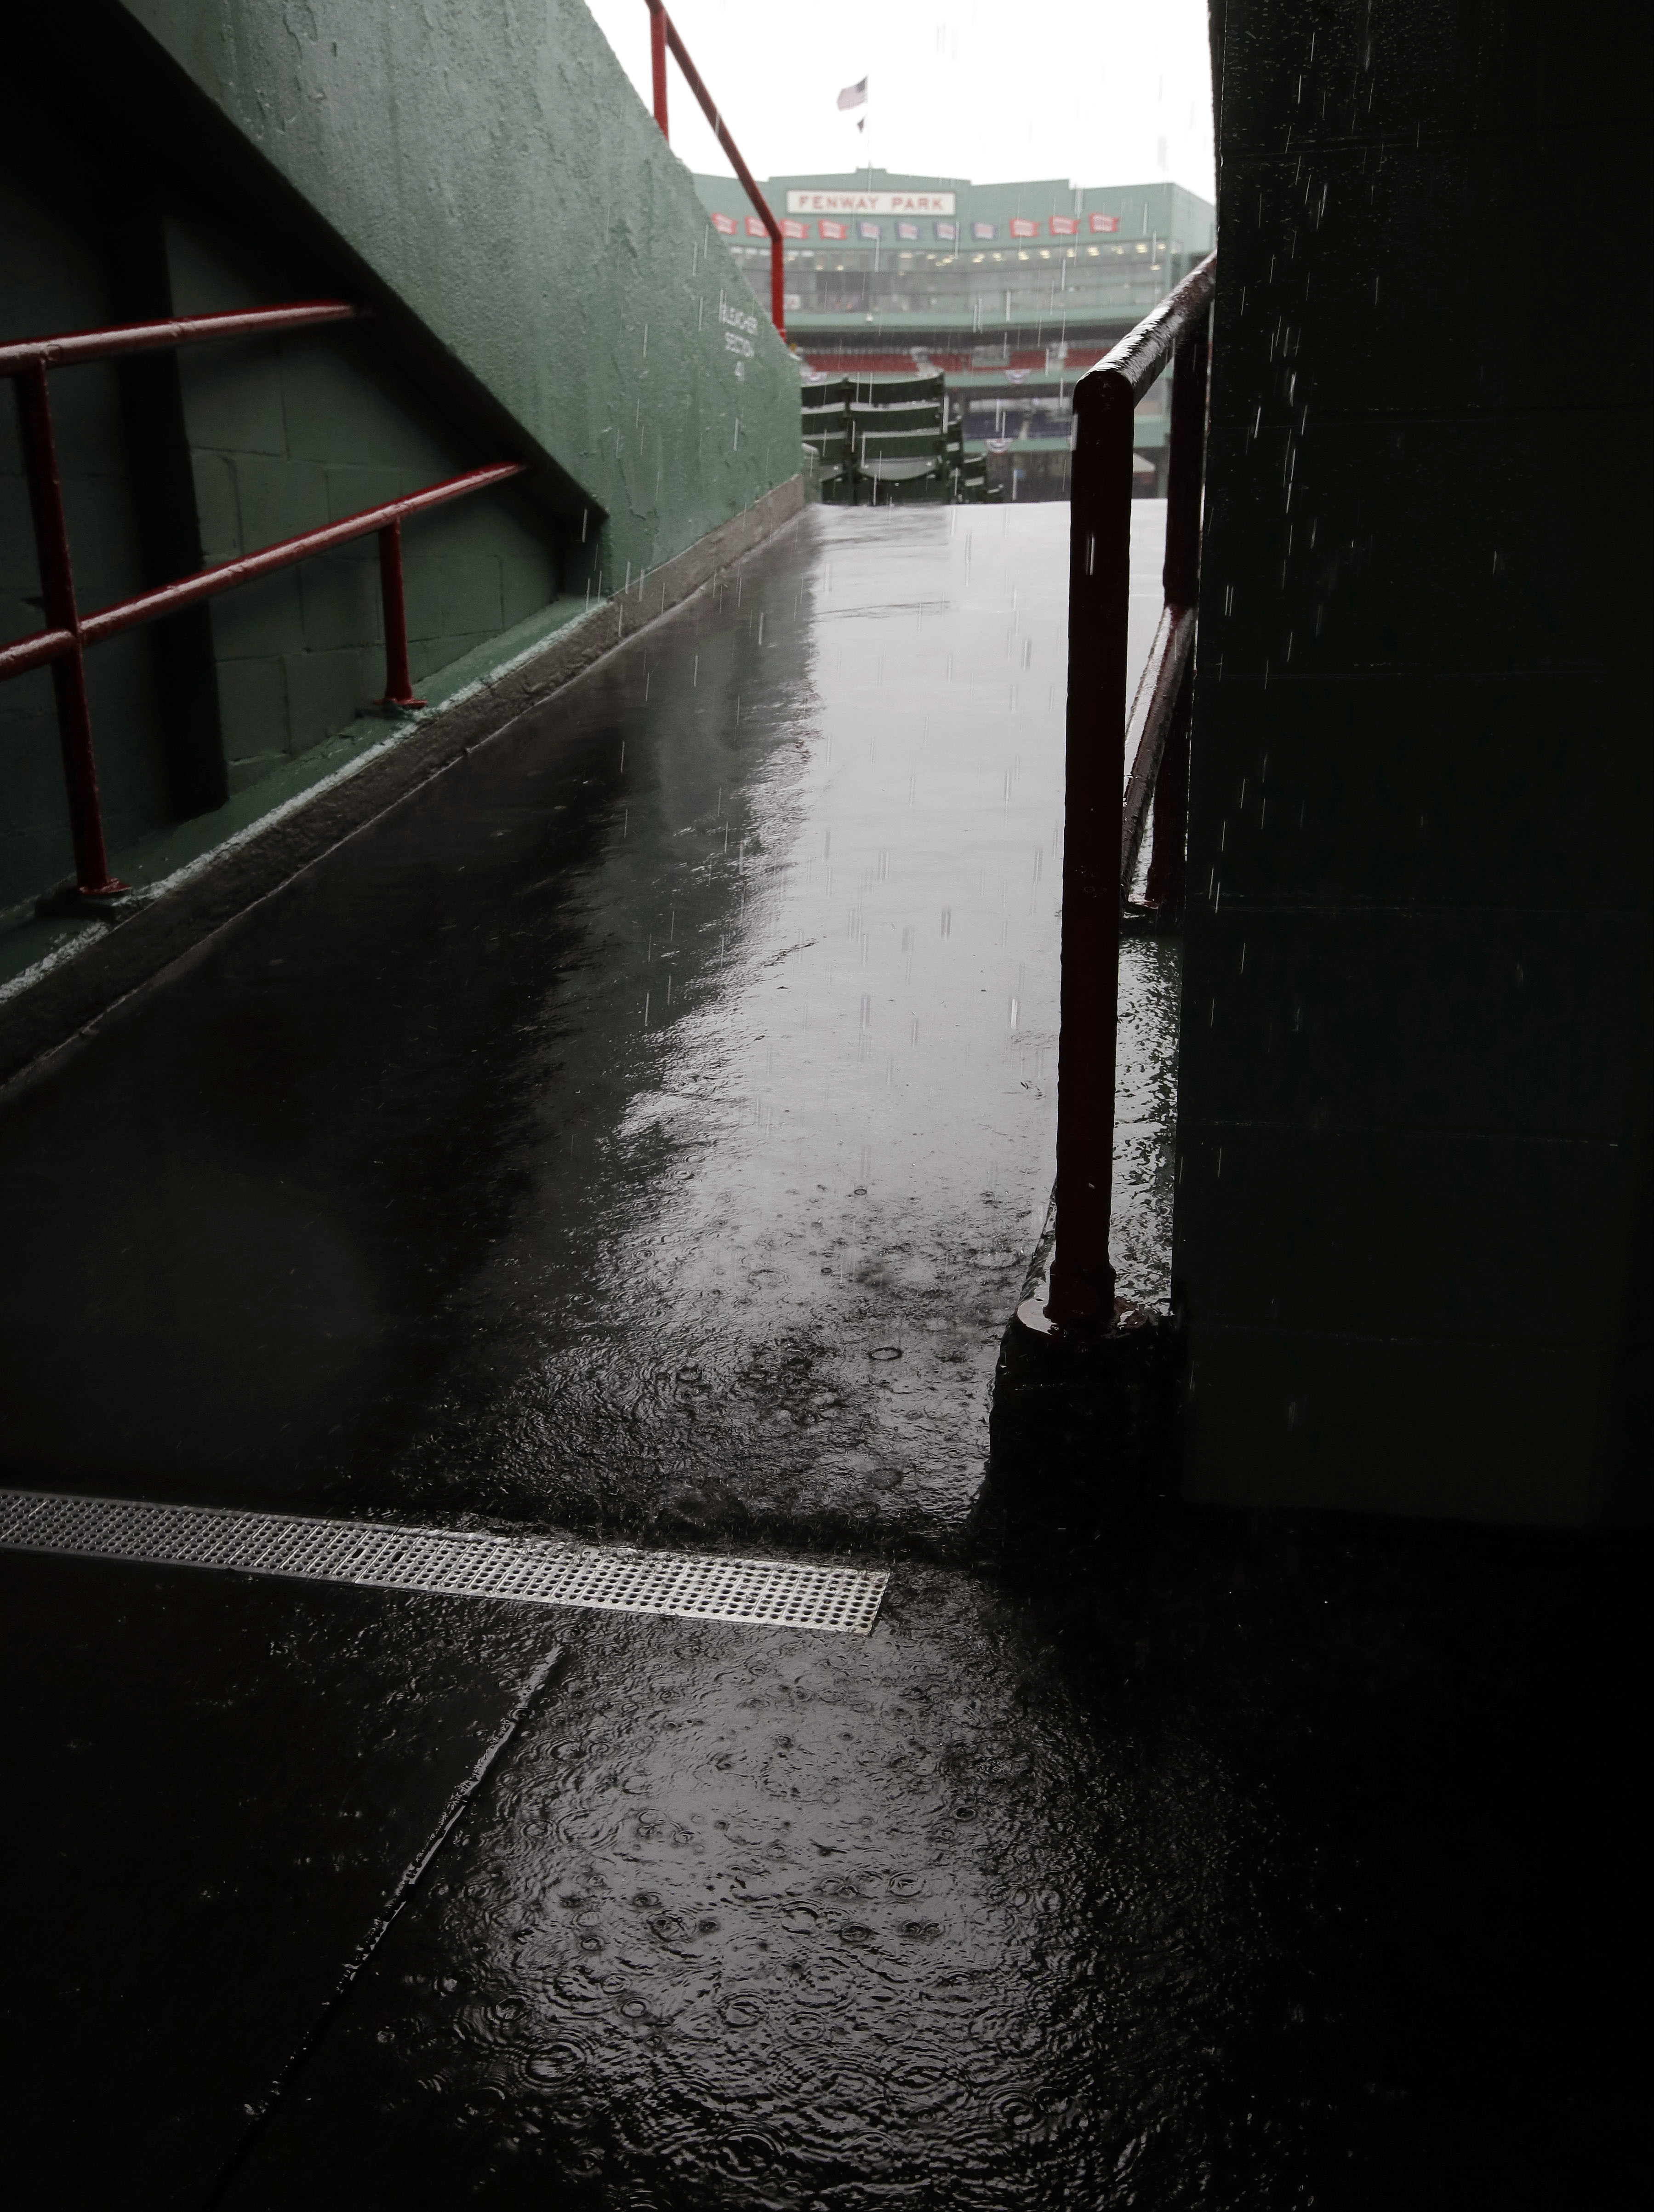 Rain drops splash in a puddle in an outfield concourse at Fenway Park during steady rain before Game 3 of baseball's American League Division Series between the Cleveland Indians and the Boston Red Sox, Sunday, Oct. 9, 2016, in Boston. (AP Photo/Charles K